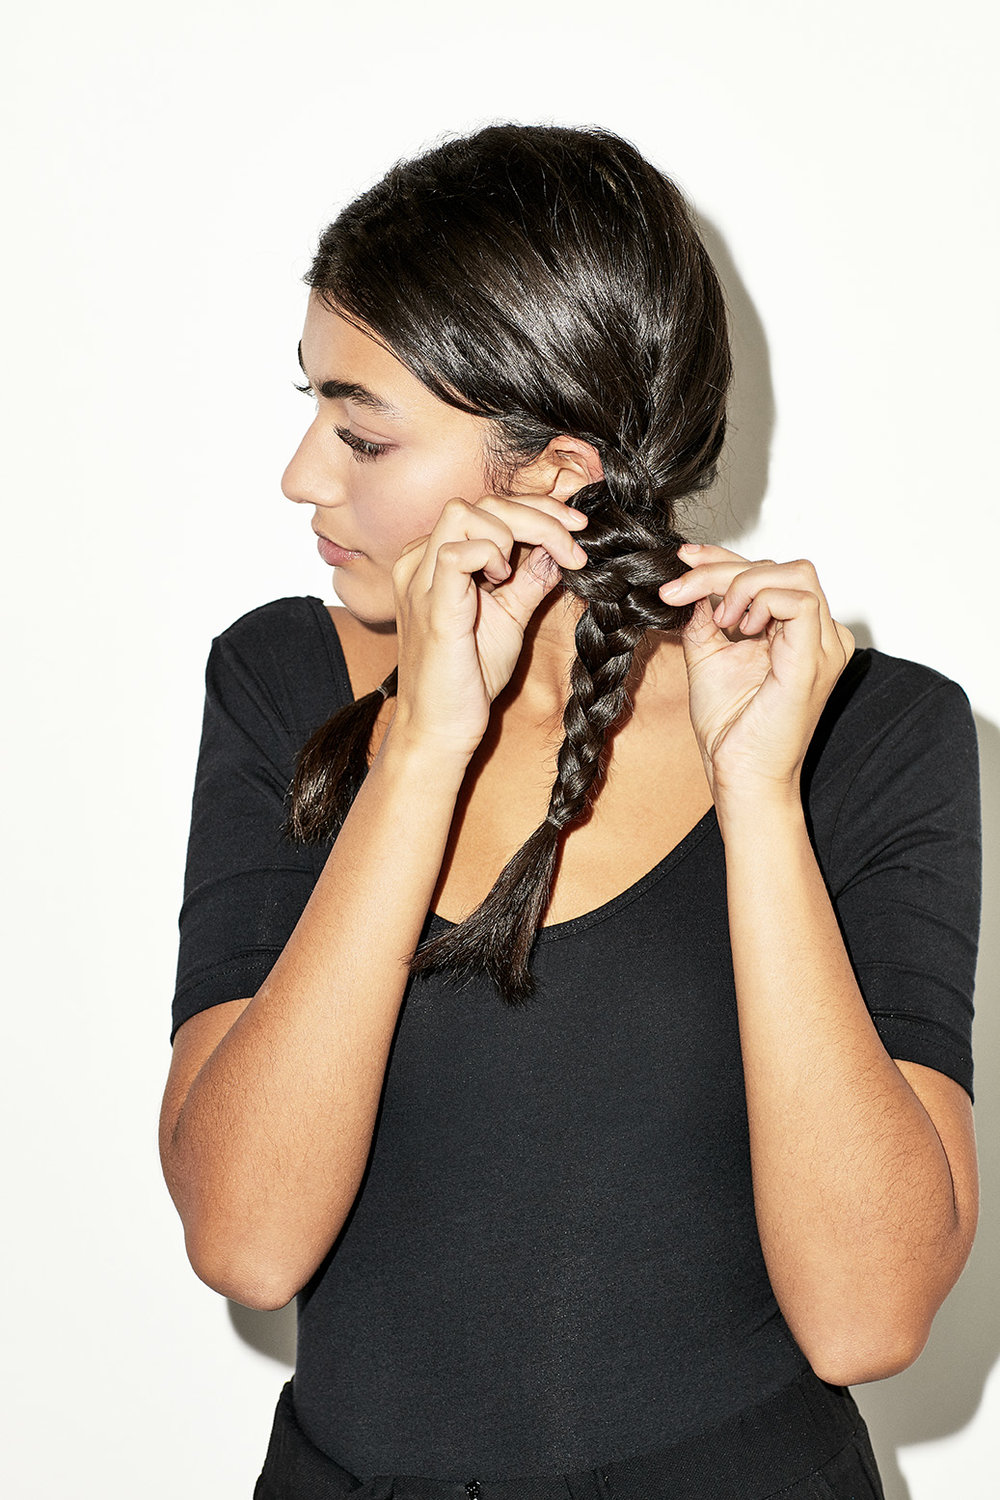 STEP 2 - Separate  the braids slightly with your fingers to add a softer texture. Pass the braid over the top of your head to the opposite side and secure with  a grip